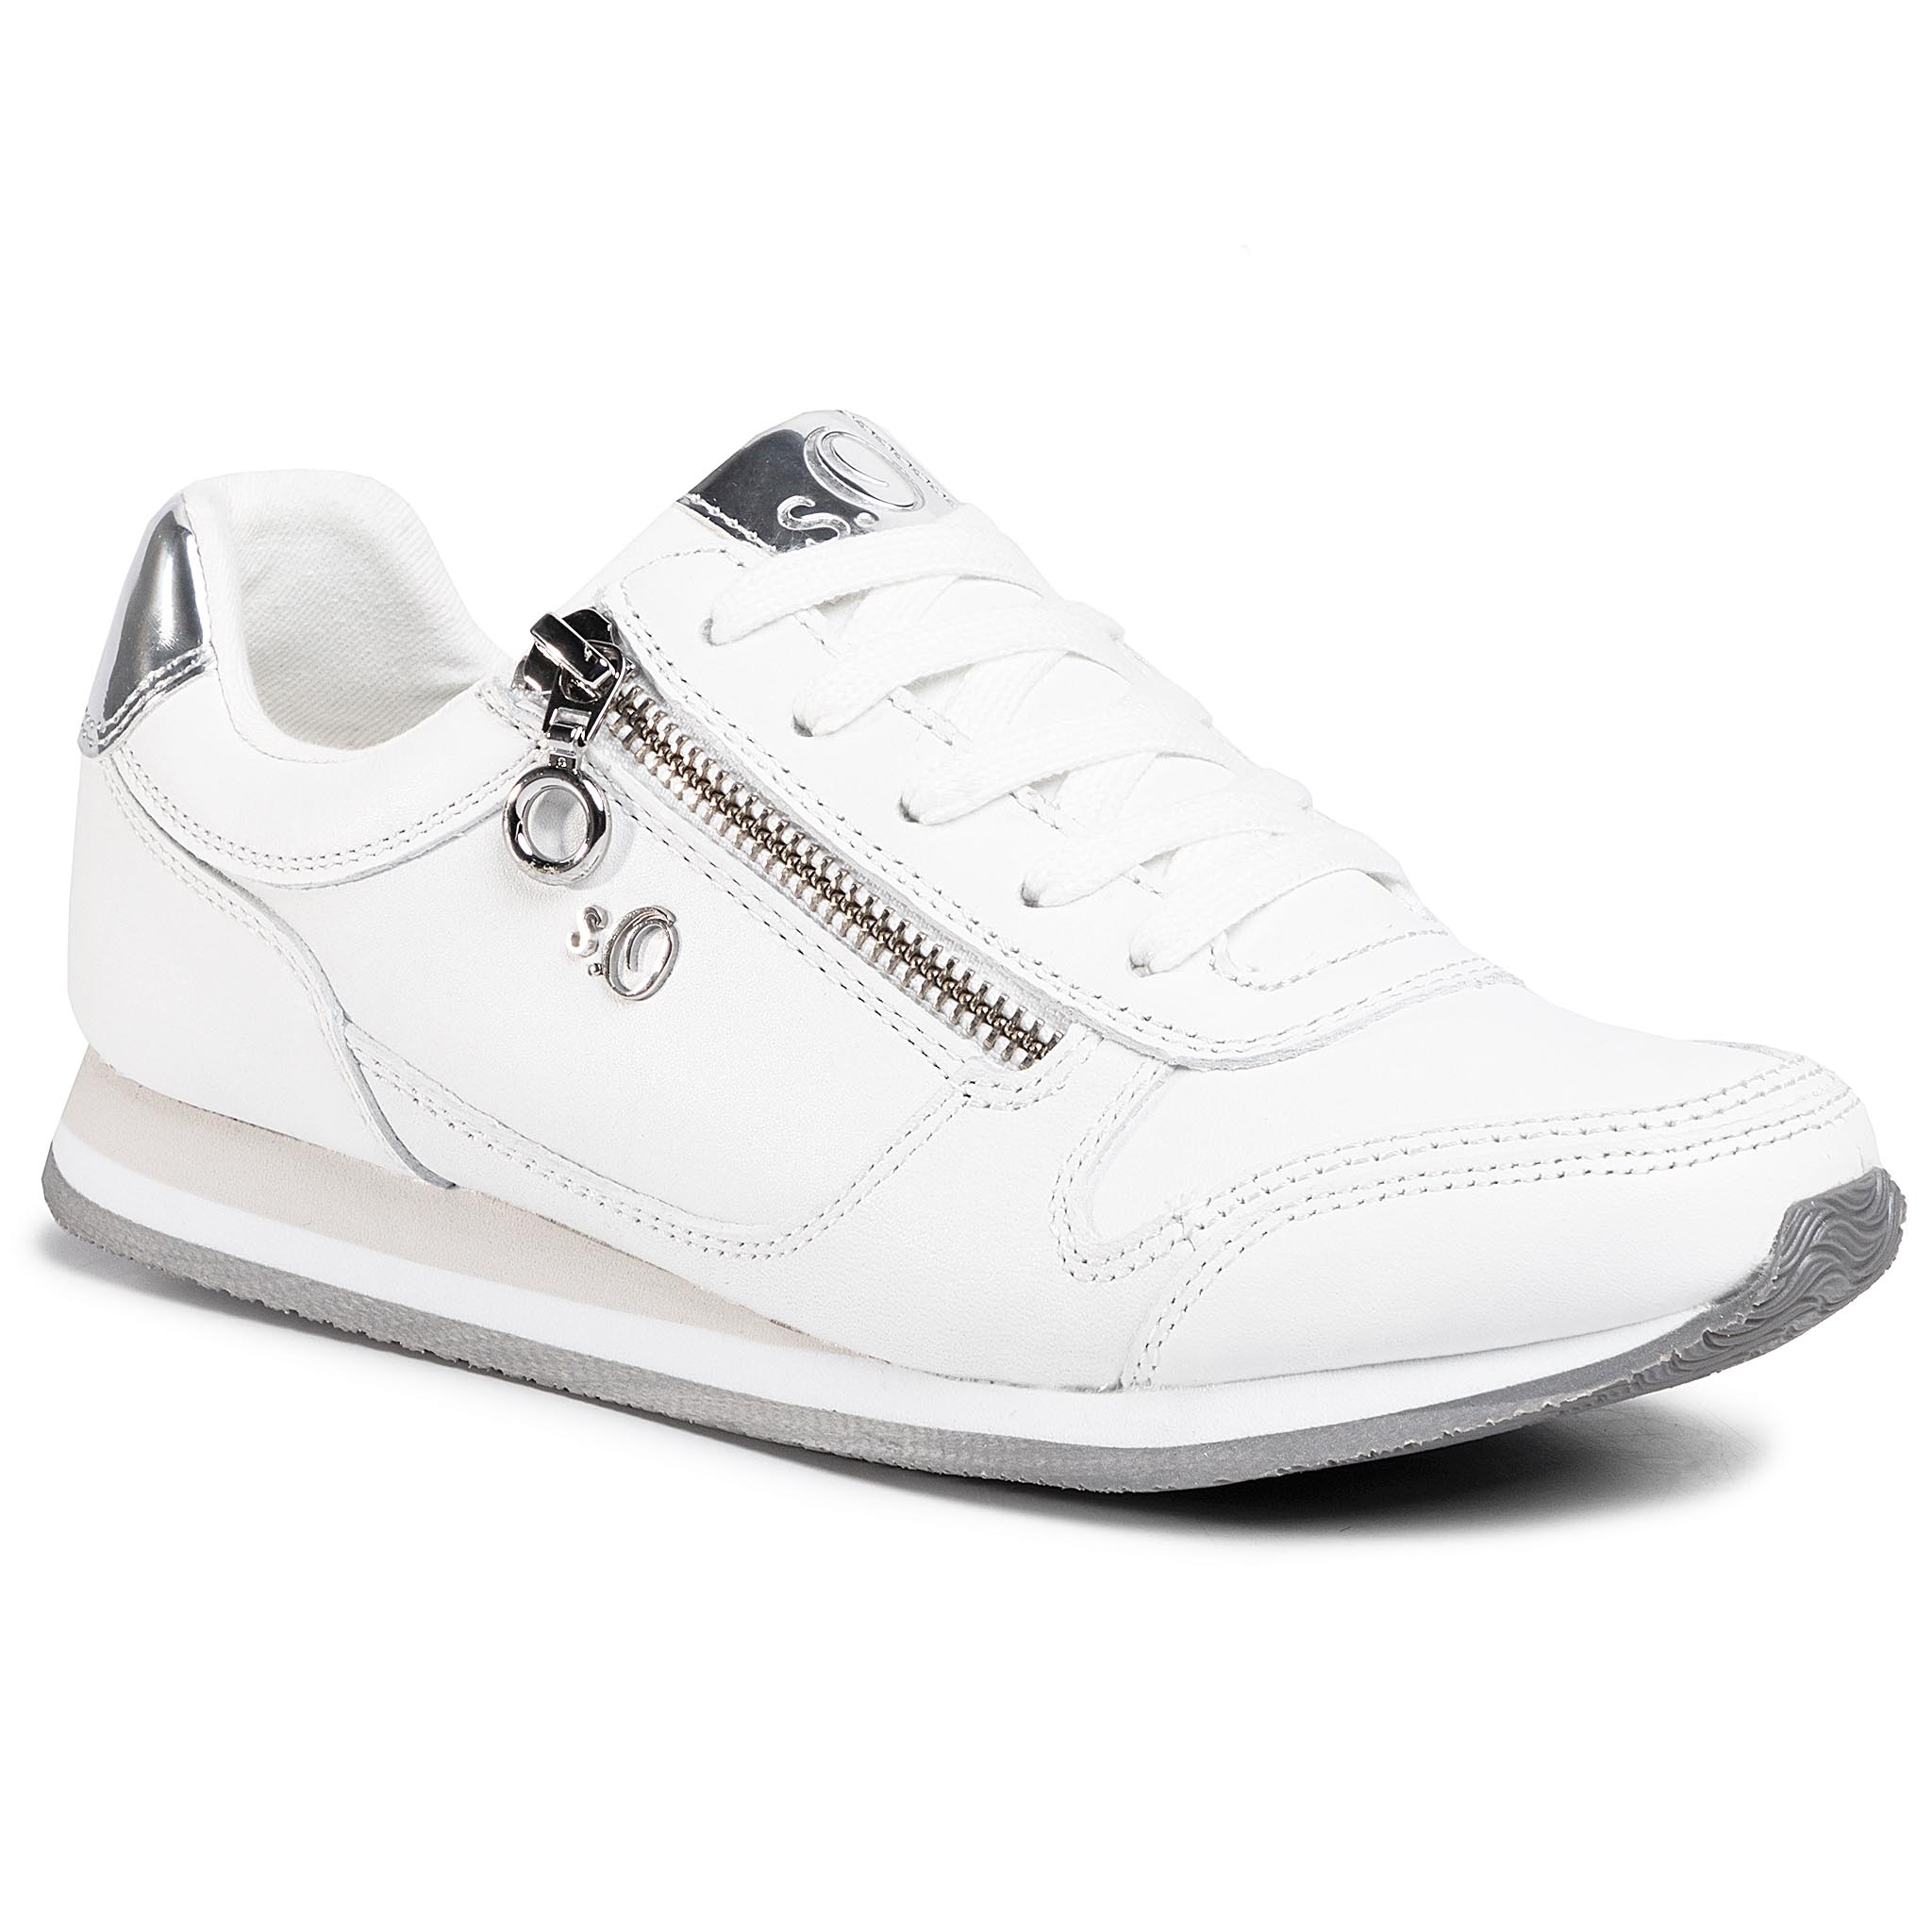 Sneakers S.OLIVER - 5-23608-24 White 100